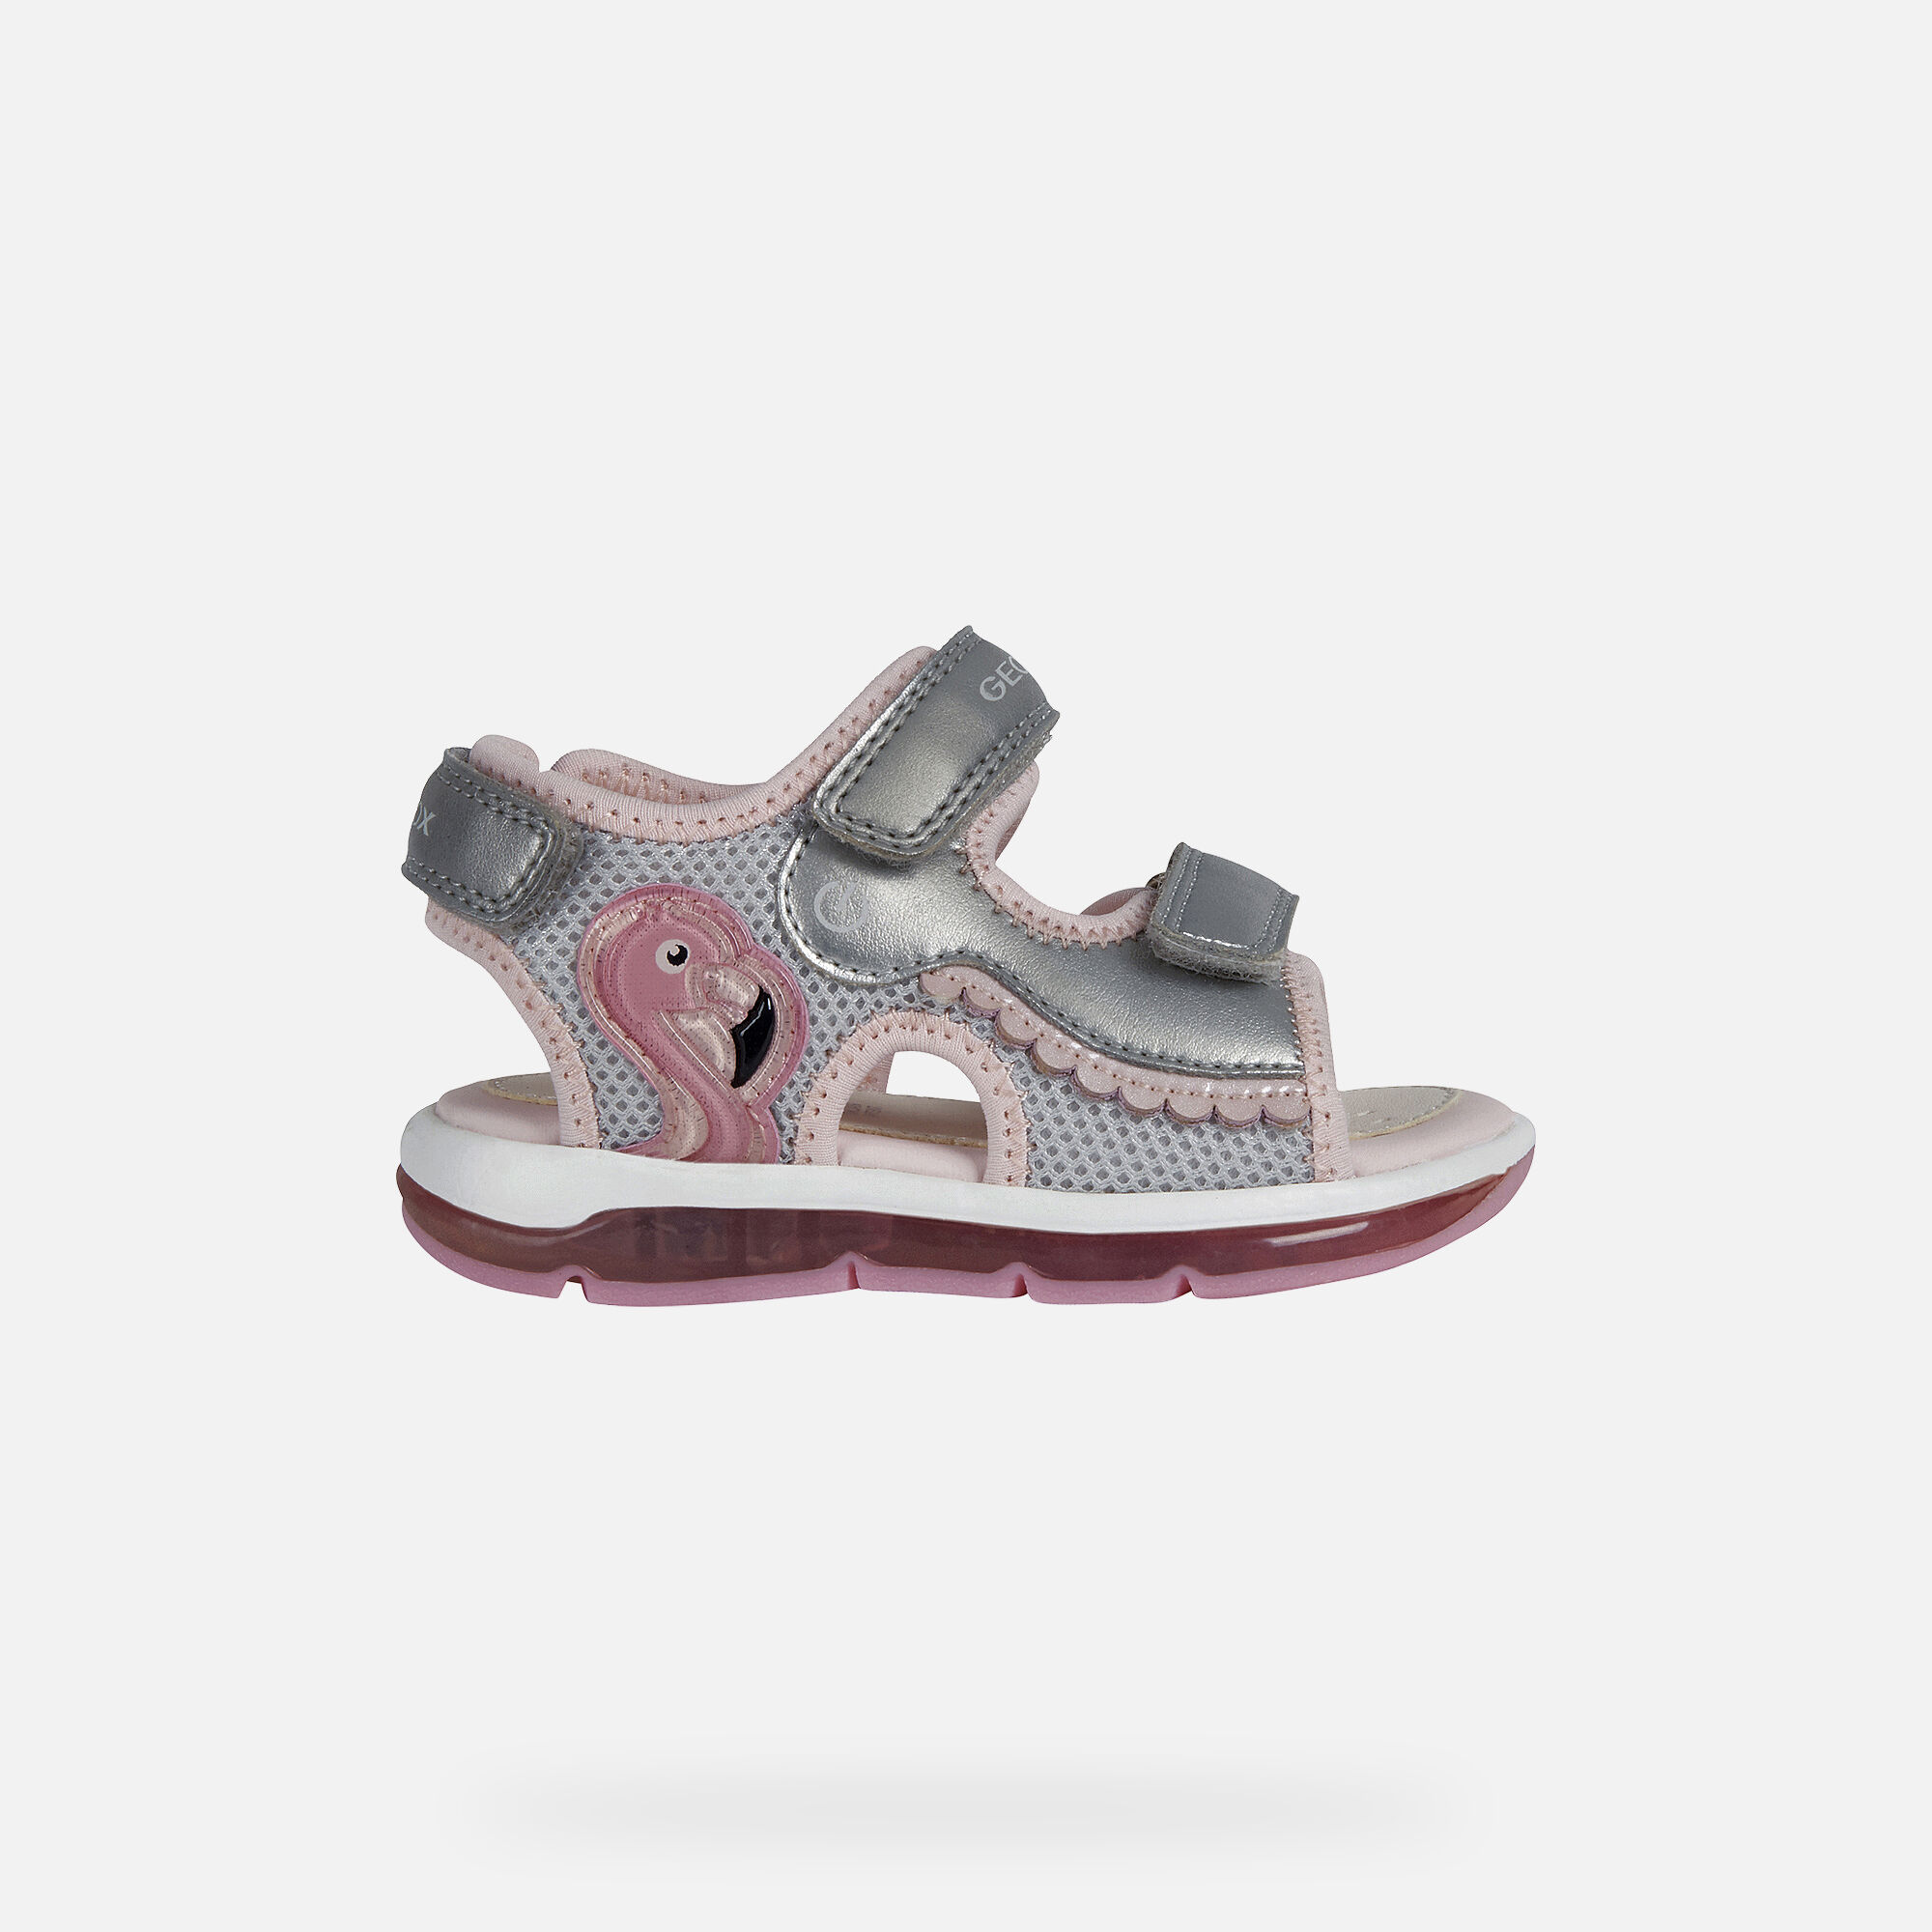 Geox TODO Baby Girl: Silver Sandals